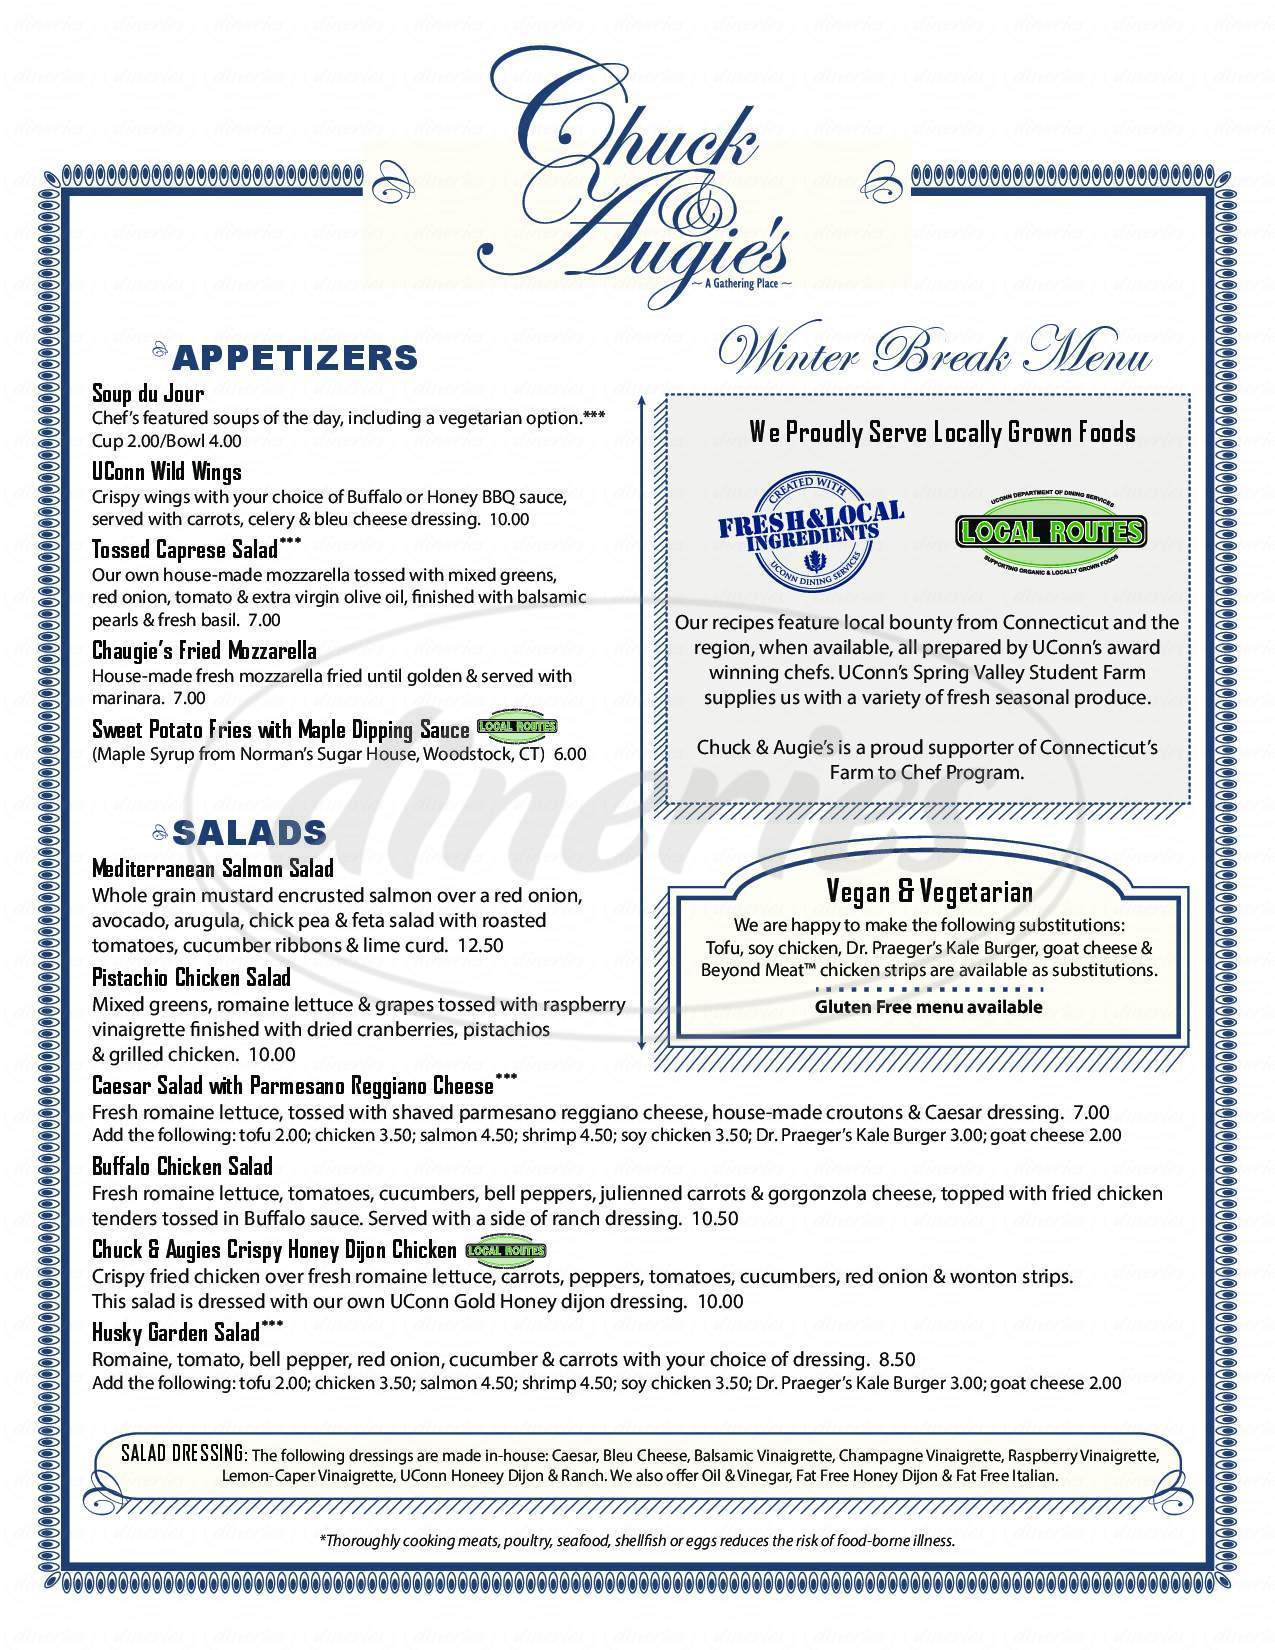 menu for Chuck & Augie's